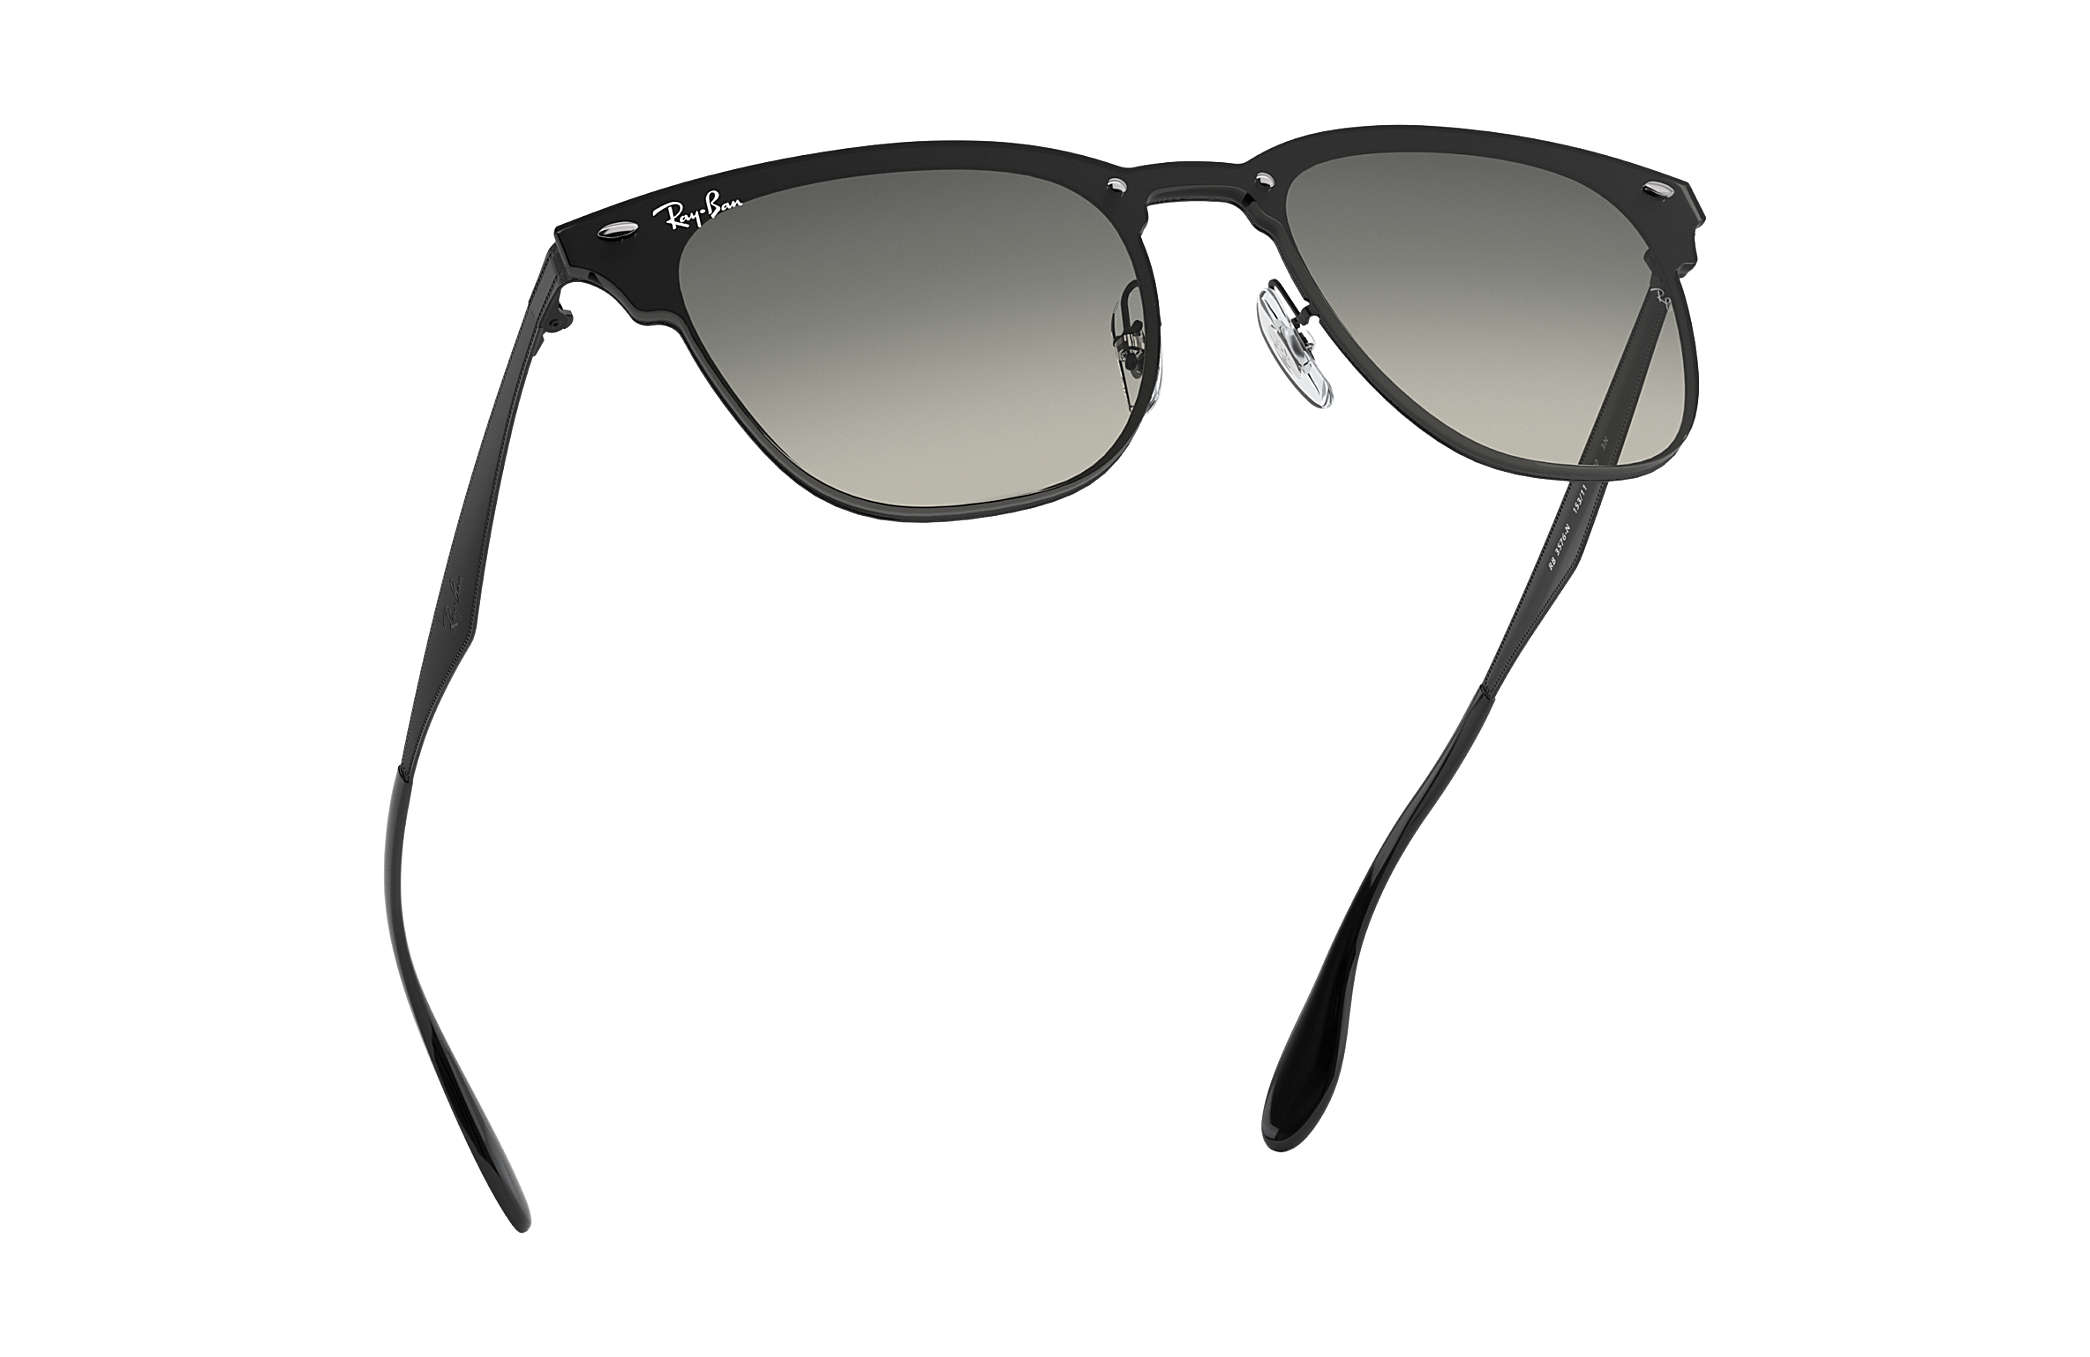 c01065020f Ray-Ban Blaze Clubmaster RB3576N Black - Steel - Grey Lenses ...